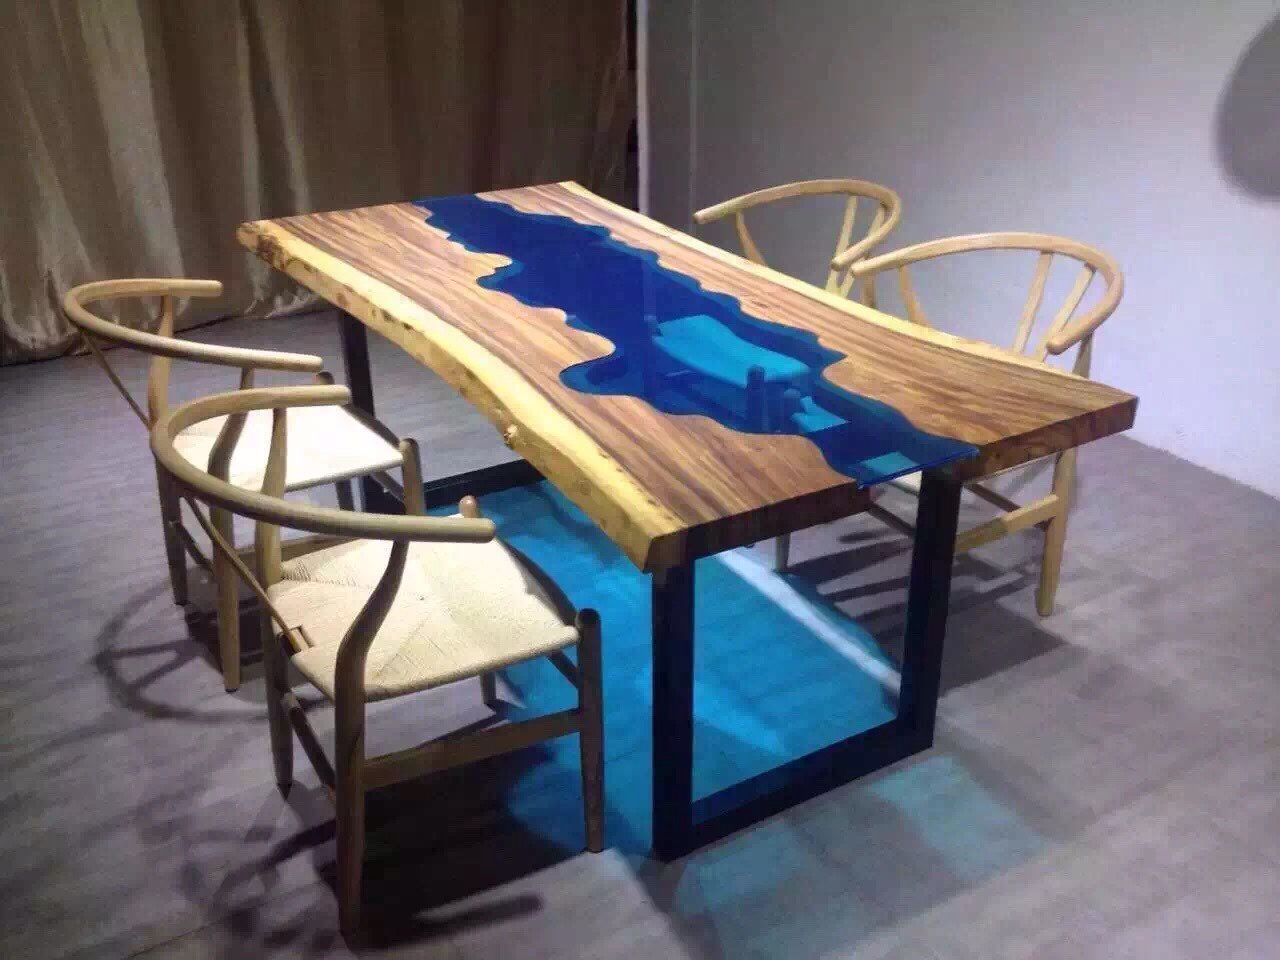 custom restaurant tables and chairs dxr racing chair uk made acacia live edge river wood glass dining